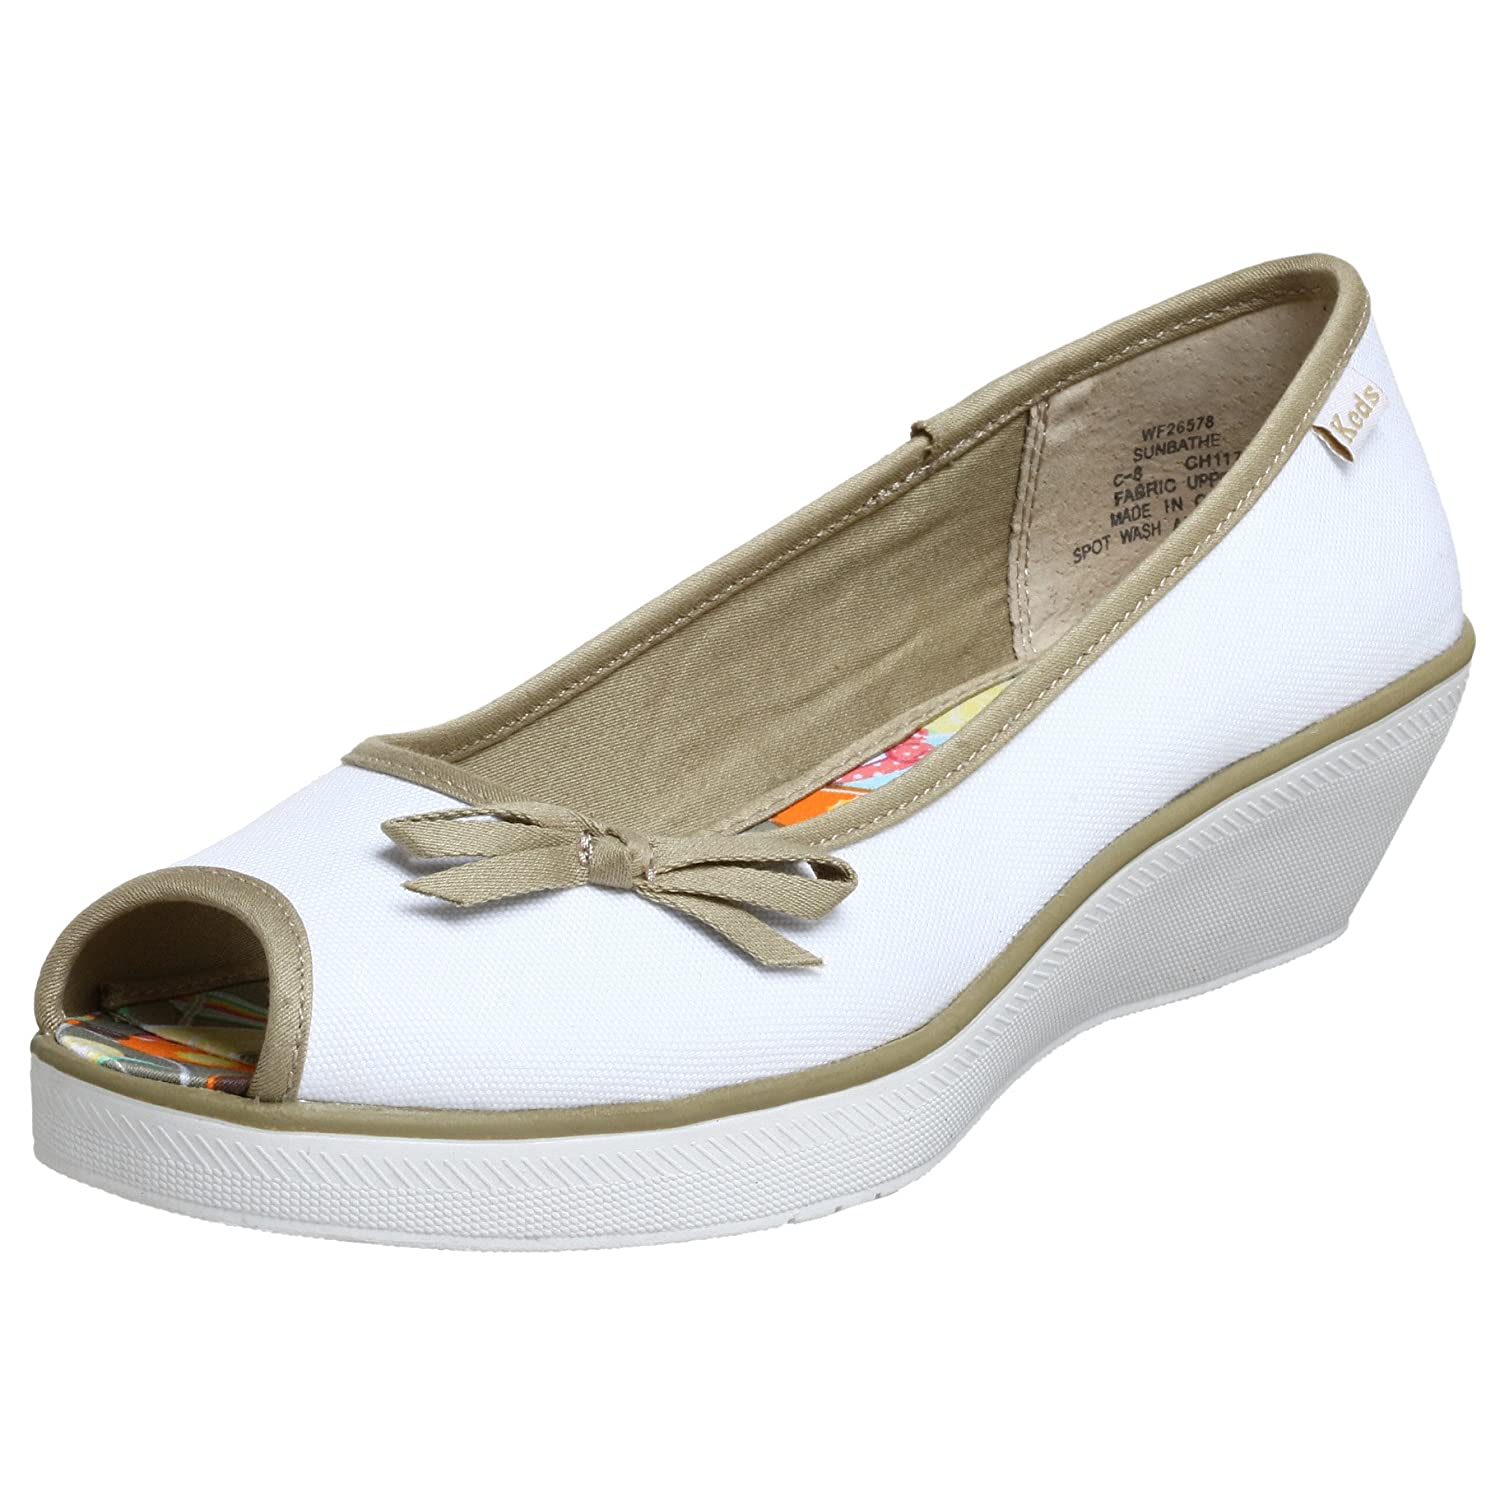 Keds Sunbathe Wedge Sneaker - Free Overnight Shipping & Return Shipping: Endless.com from endless.com